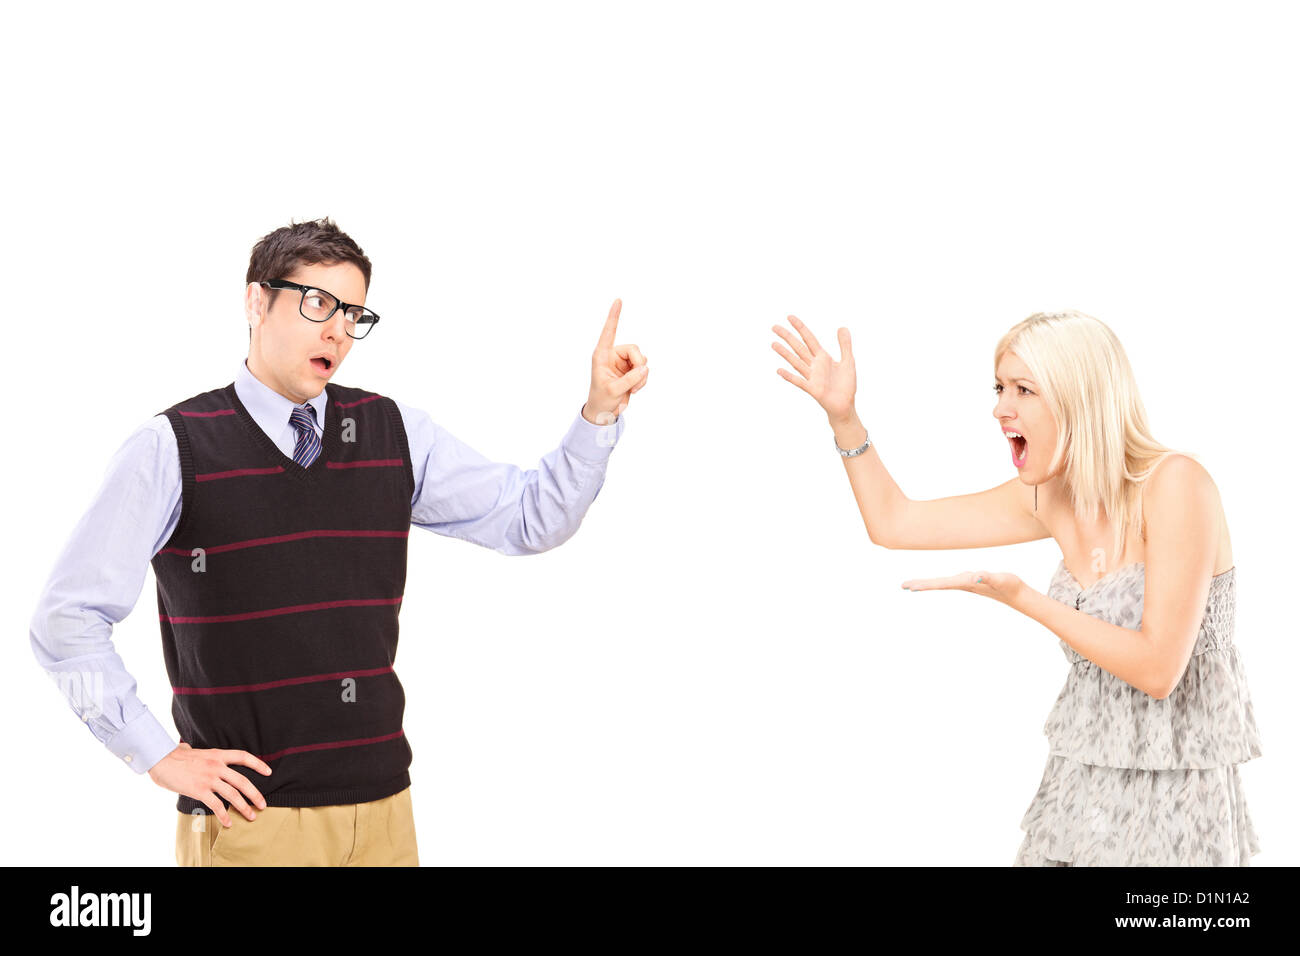 A young heterosexual couple arguing isolated on white background - Stock Image